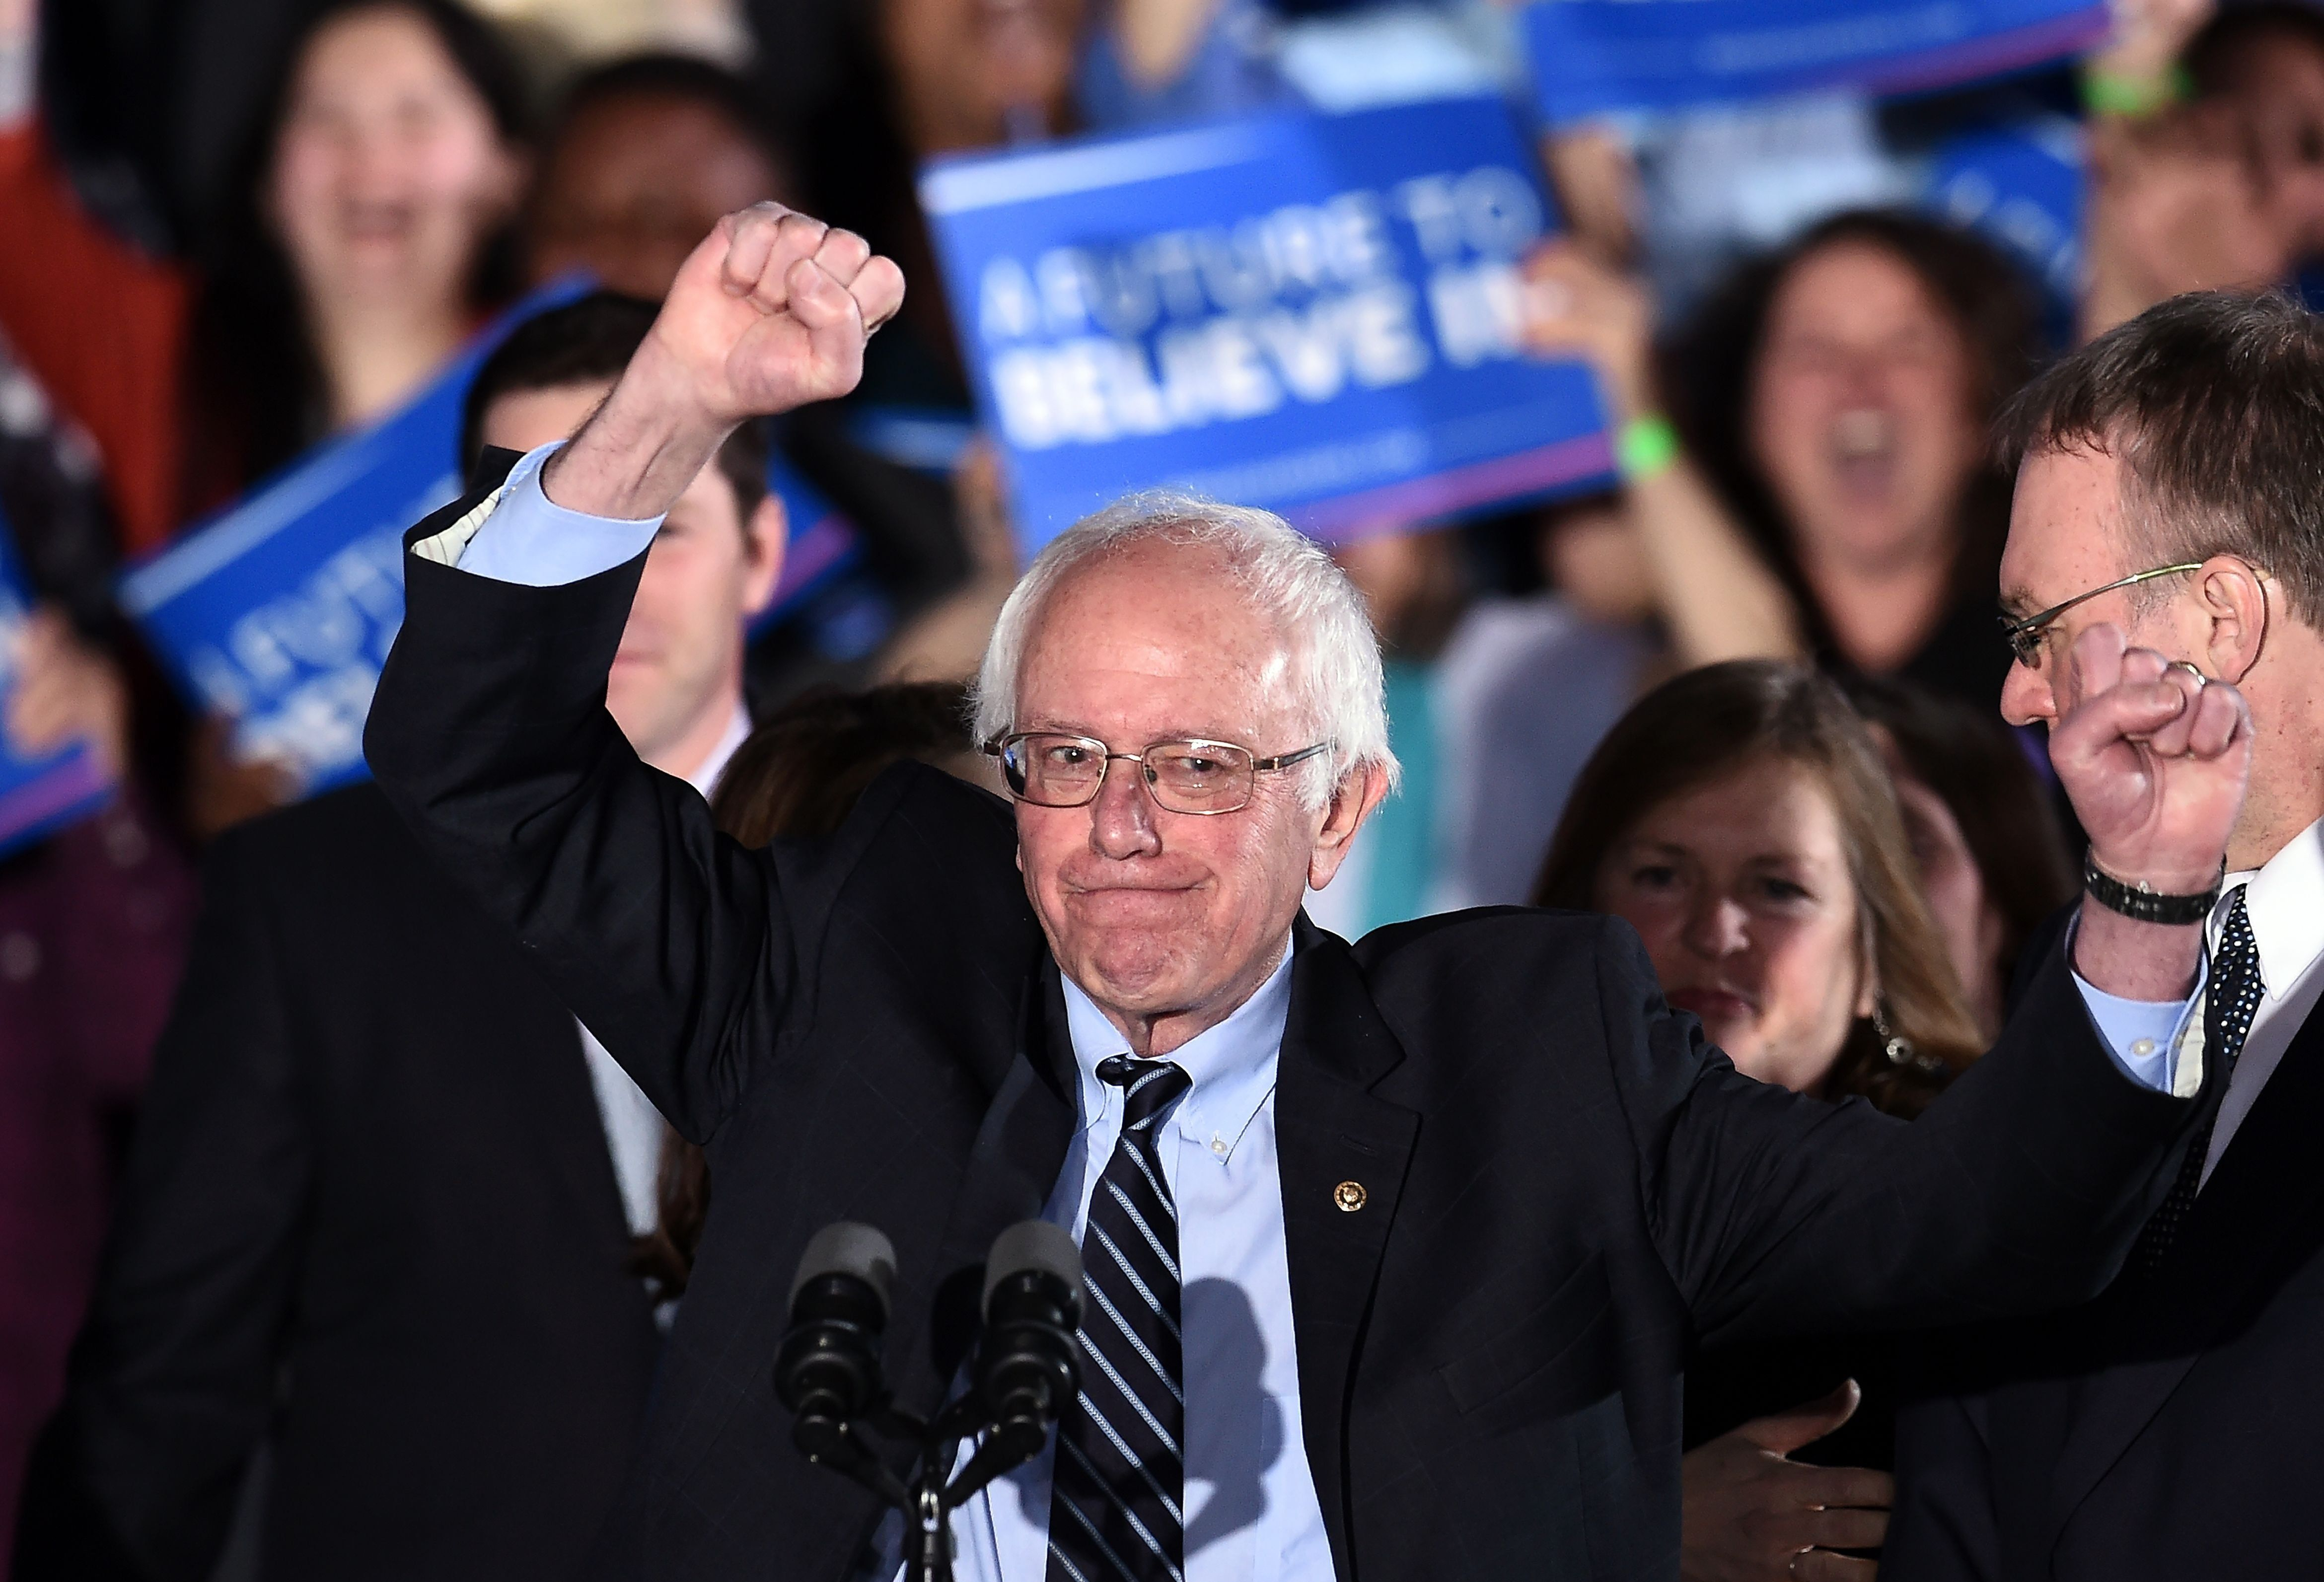 US Democratic presidential candidate Bernie Sanders celebrates victory during a primary night rally in Concord, New Hampshire, on February 9, 2016. Political novice Donald Trump and self-described democratic socialist Bernie Sanders won New Hampshire's presidential primaries Tuesday, US media projected, turning the American political establishment on its head early in the long nominations battle. / AFP / Jewel Samad        (Photo credit should read JEWEL SAMAD/AFP/Getty Images)